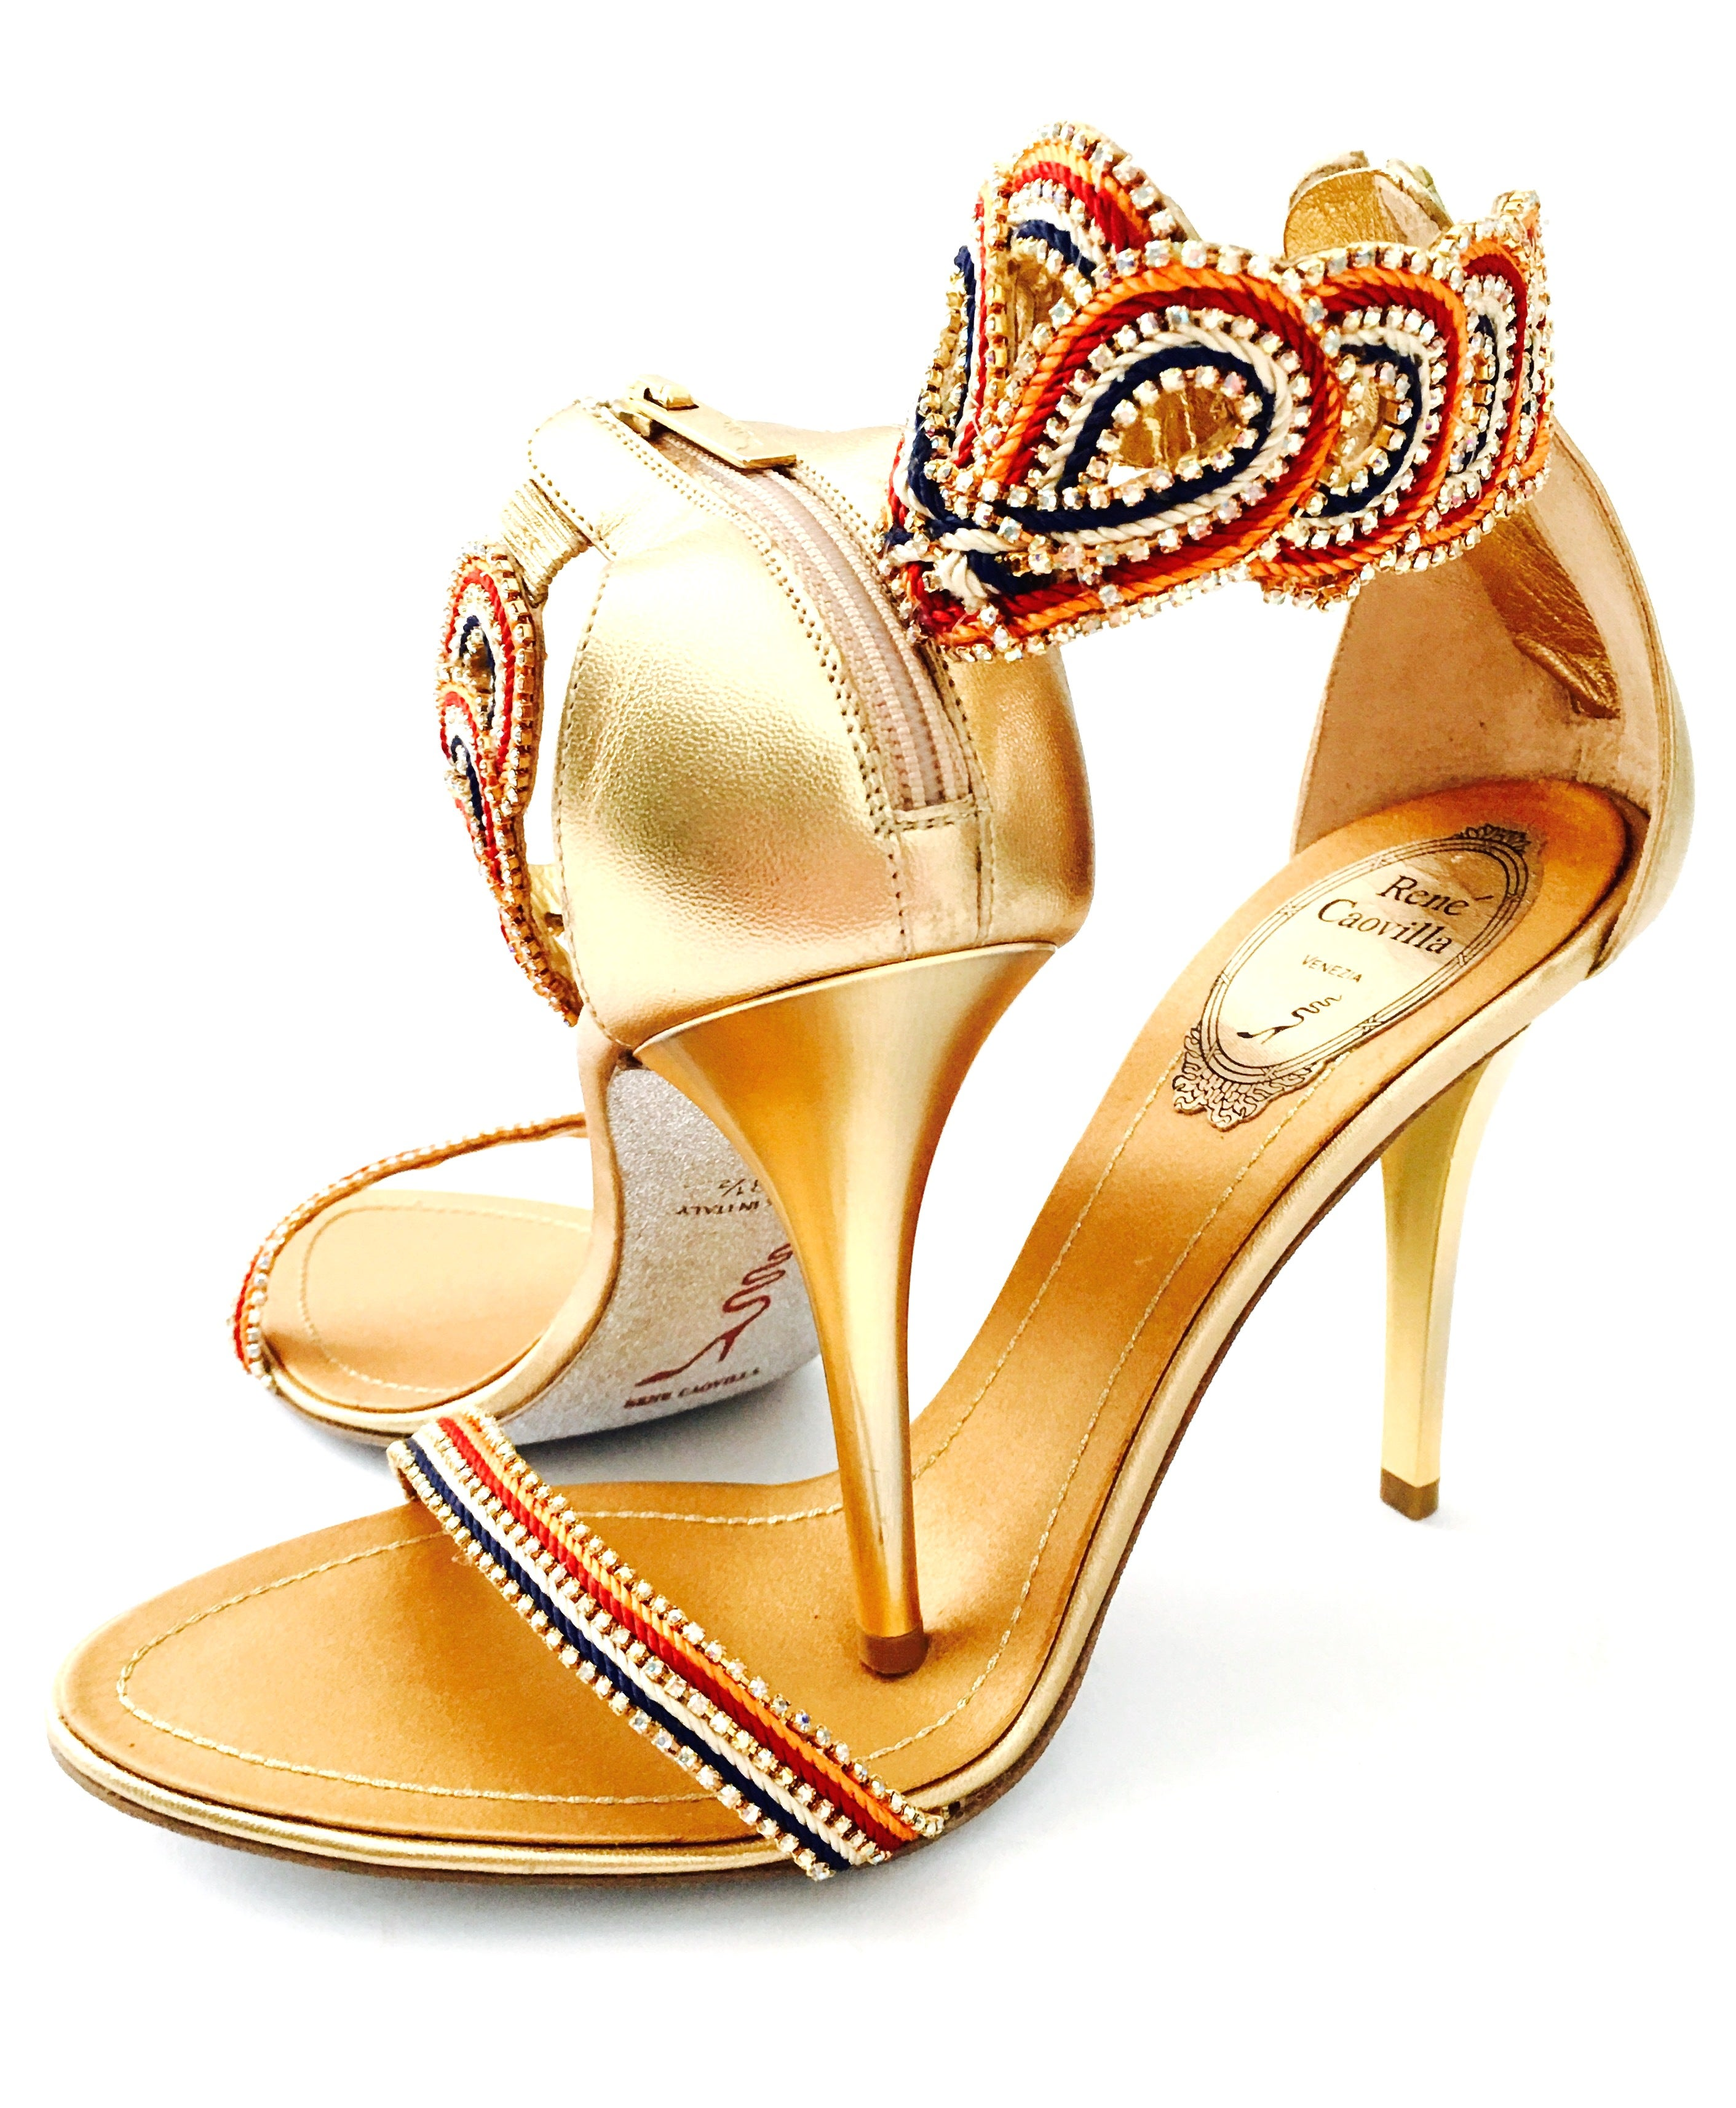 b590b5d4e Contemporary and new rene caovilla metallic embellished ankle wrap sandals  for sale at stdibs jpg 2823x3428